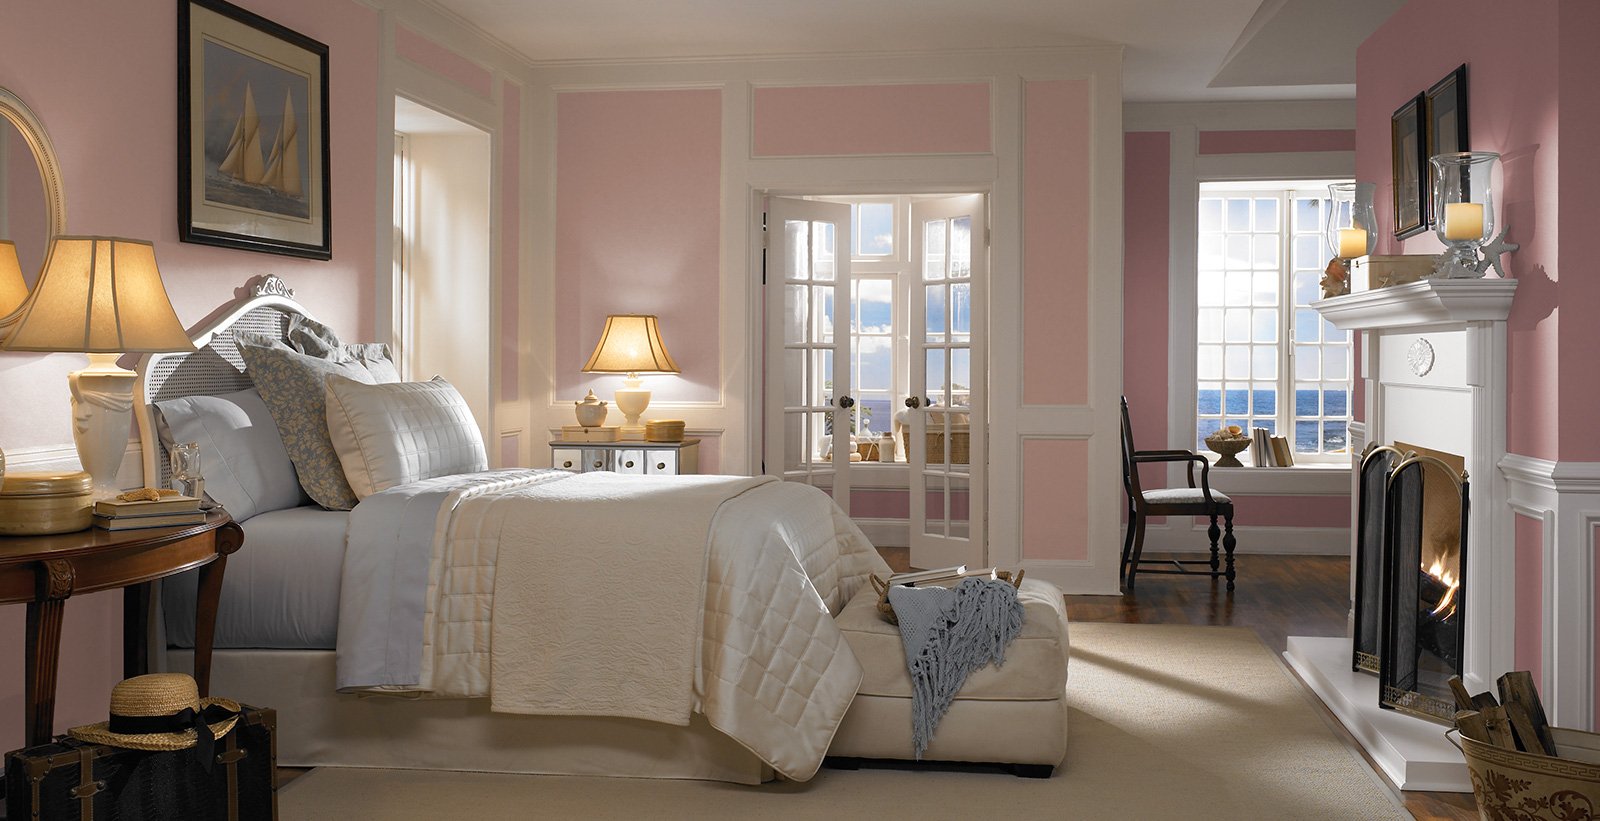 Coastal styled bedroom with light pink on main walls, mauve pink on accent walls, and white on trim and fireplace mantel